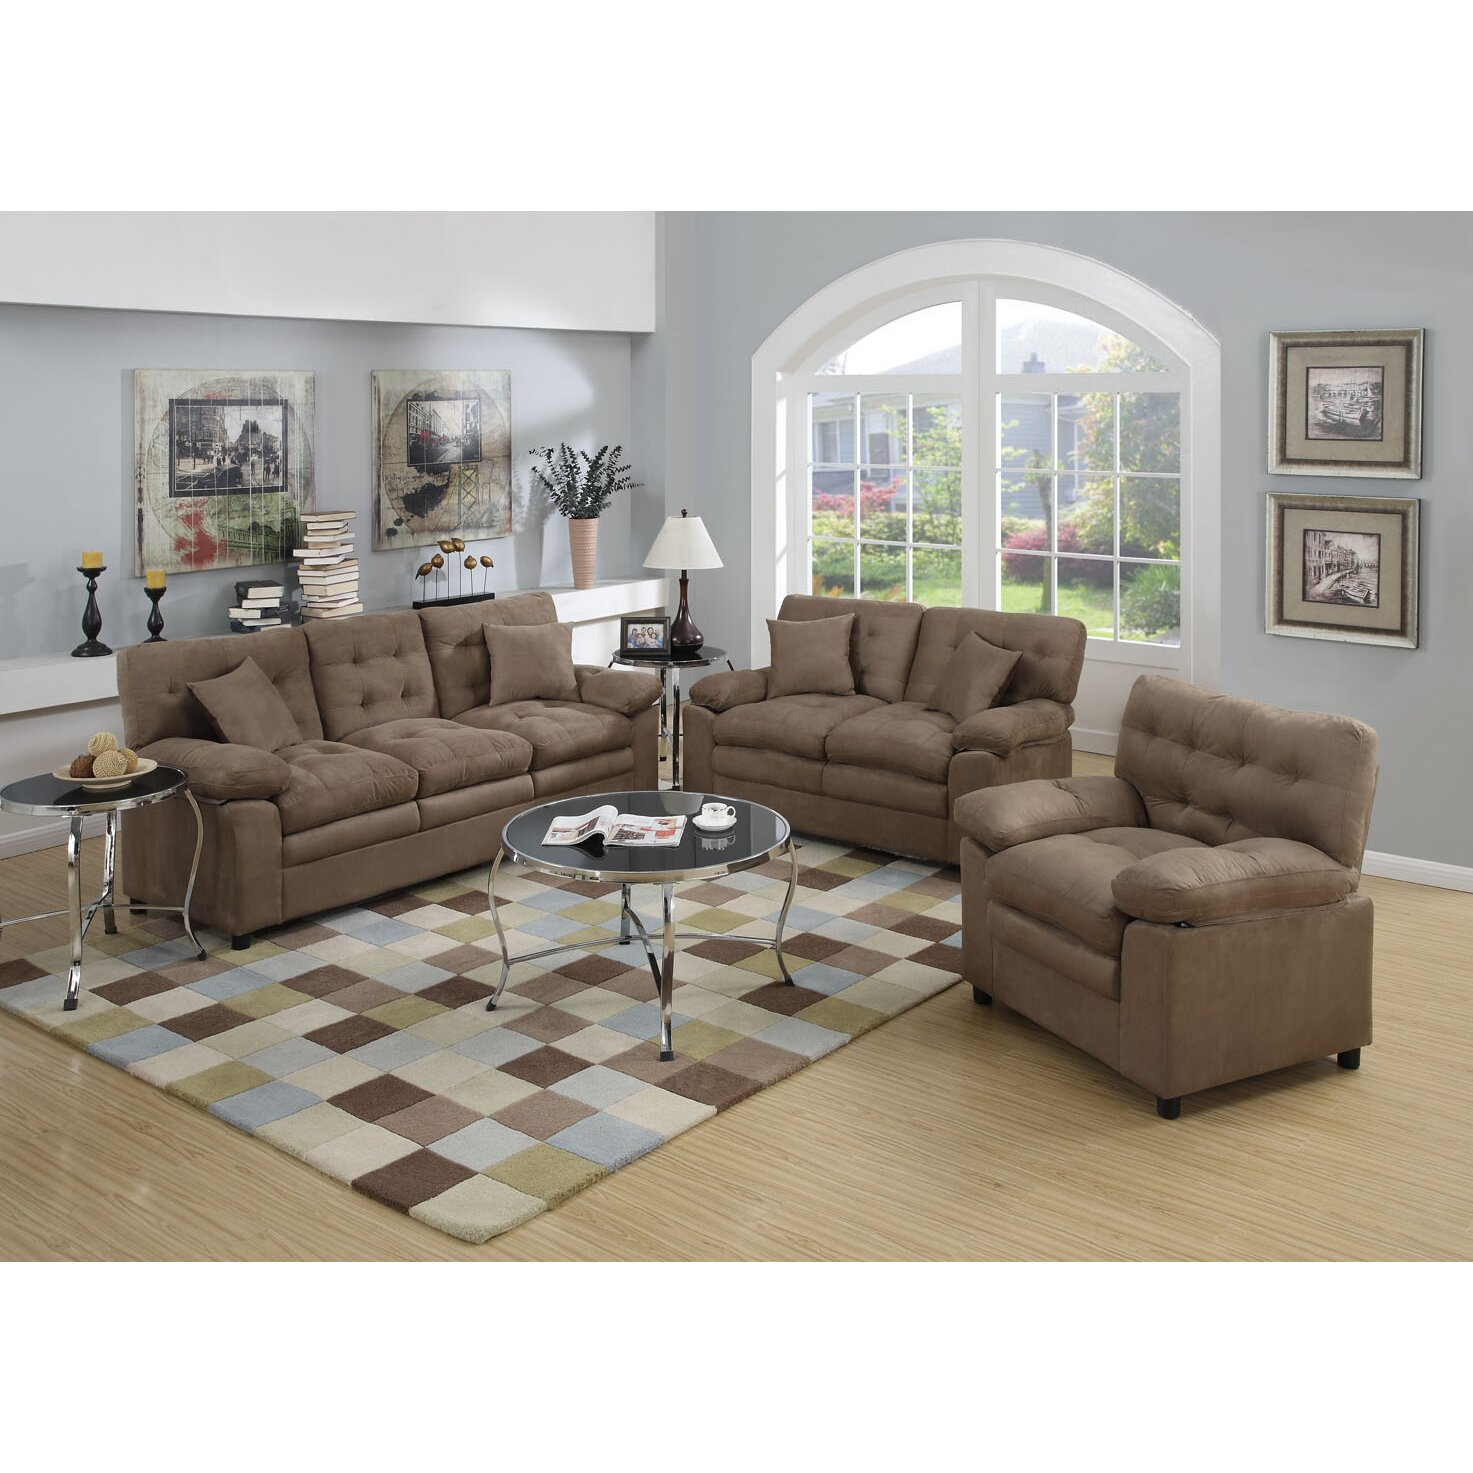 Living Room Set Stanley Collection Fabric Living Room Set